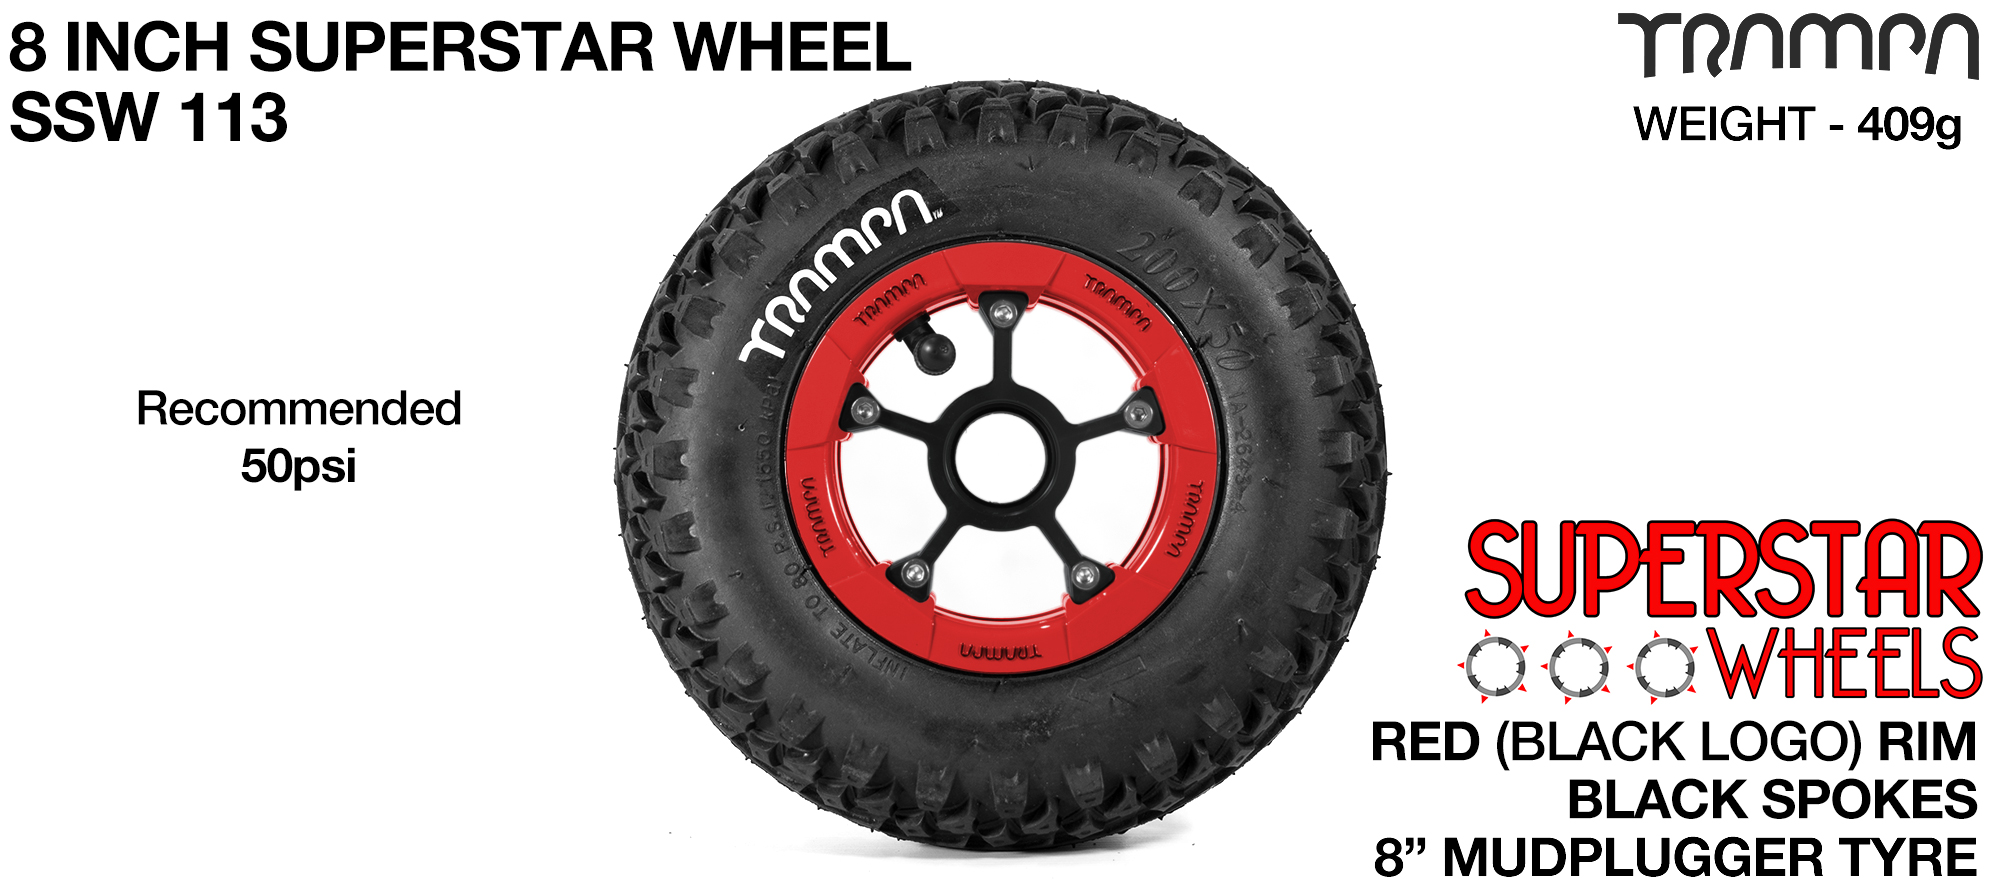 Superstar 8 inch wheels -  Red & Black Logo Rim Black Anodised spokes & Black MudPlugger 8 inch Tyre